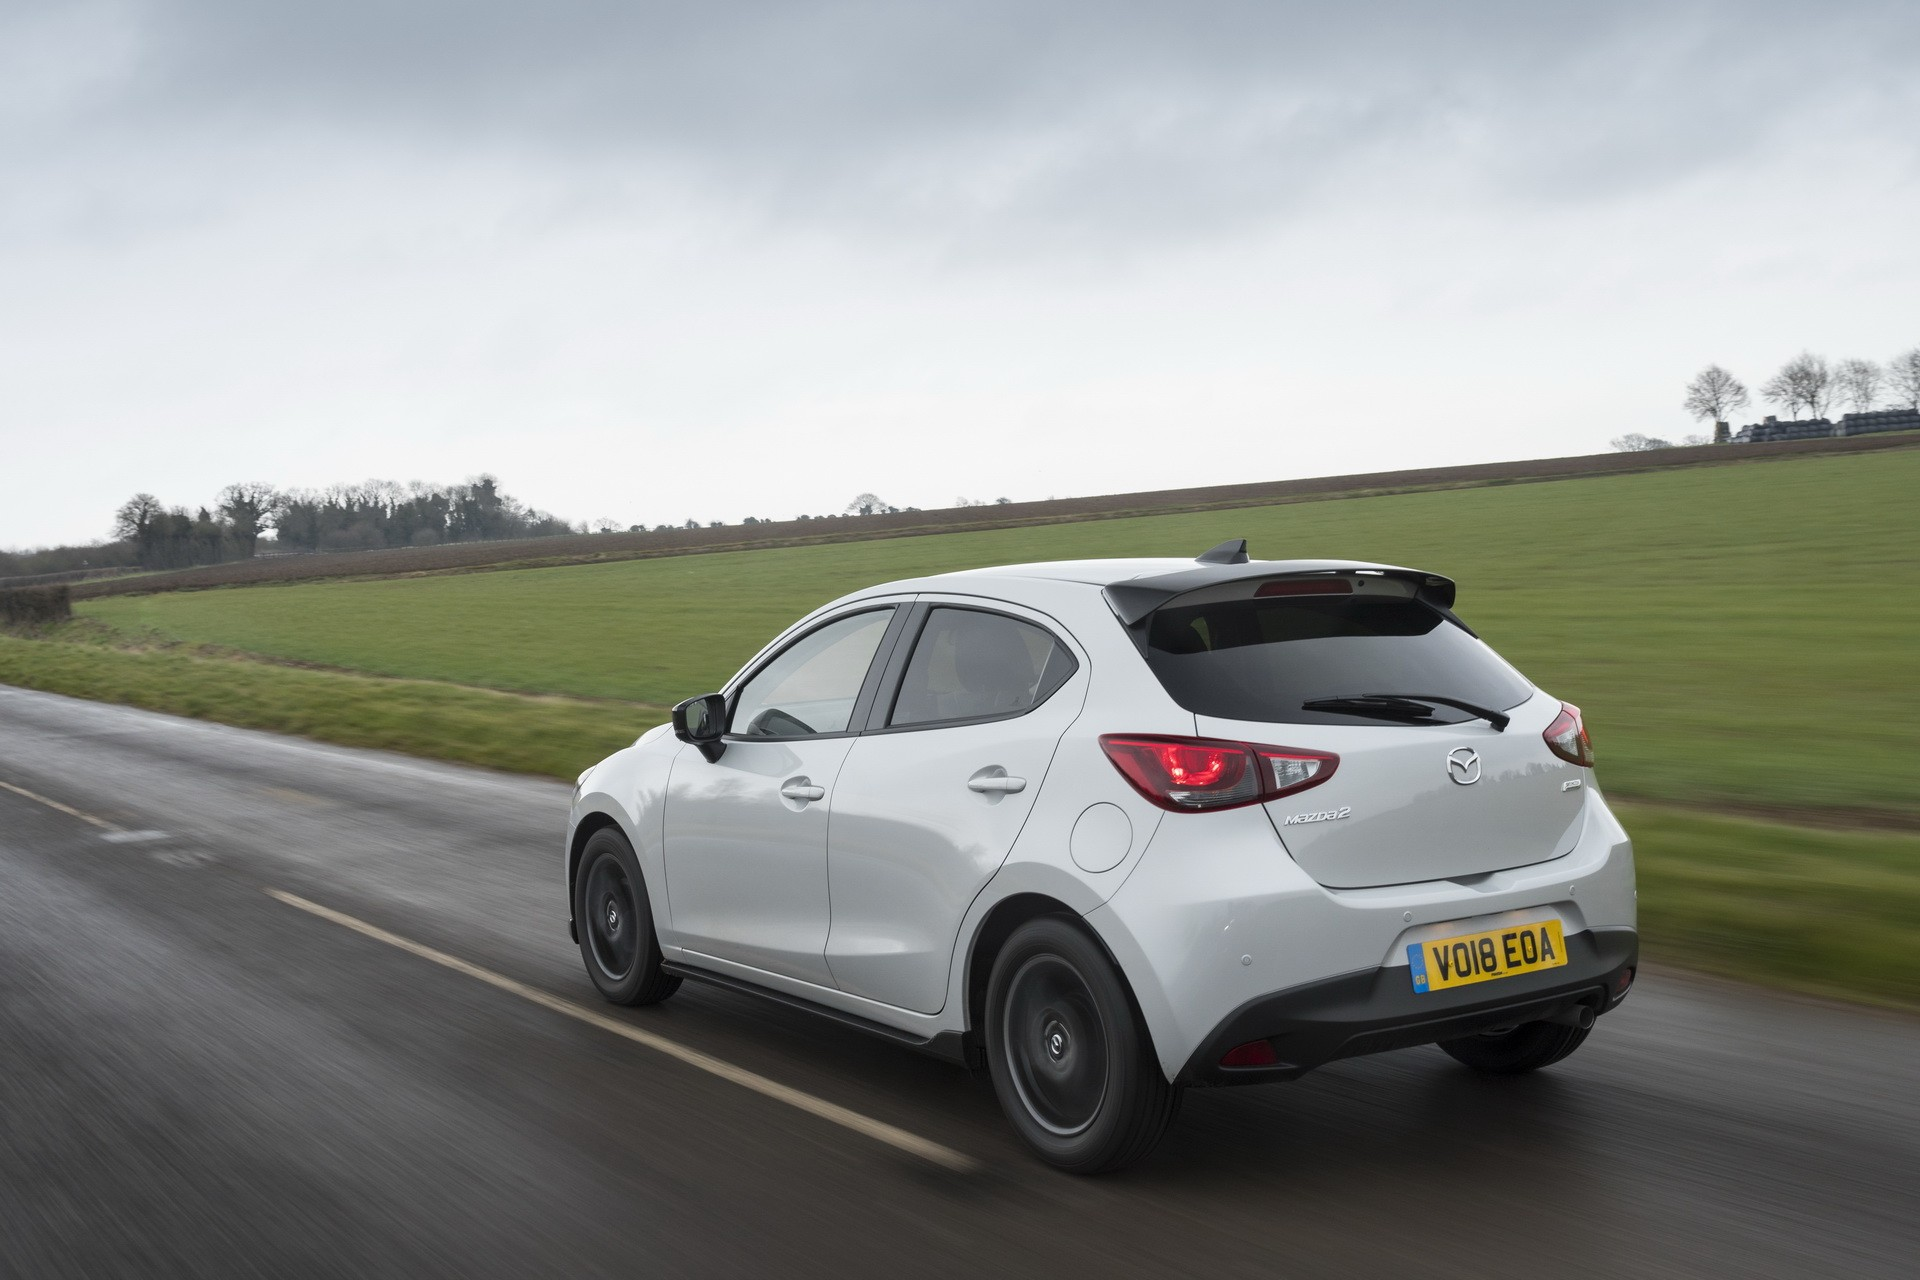 2018 mazda2 gets sport black limited edition with aero kit. Black Bedroom Furniture Sets. Home Design Ideas